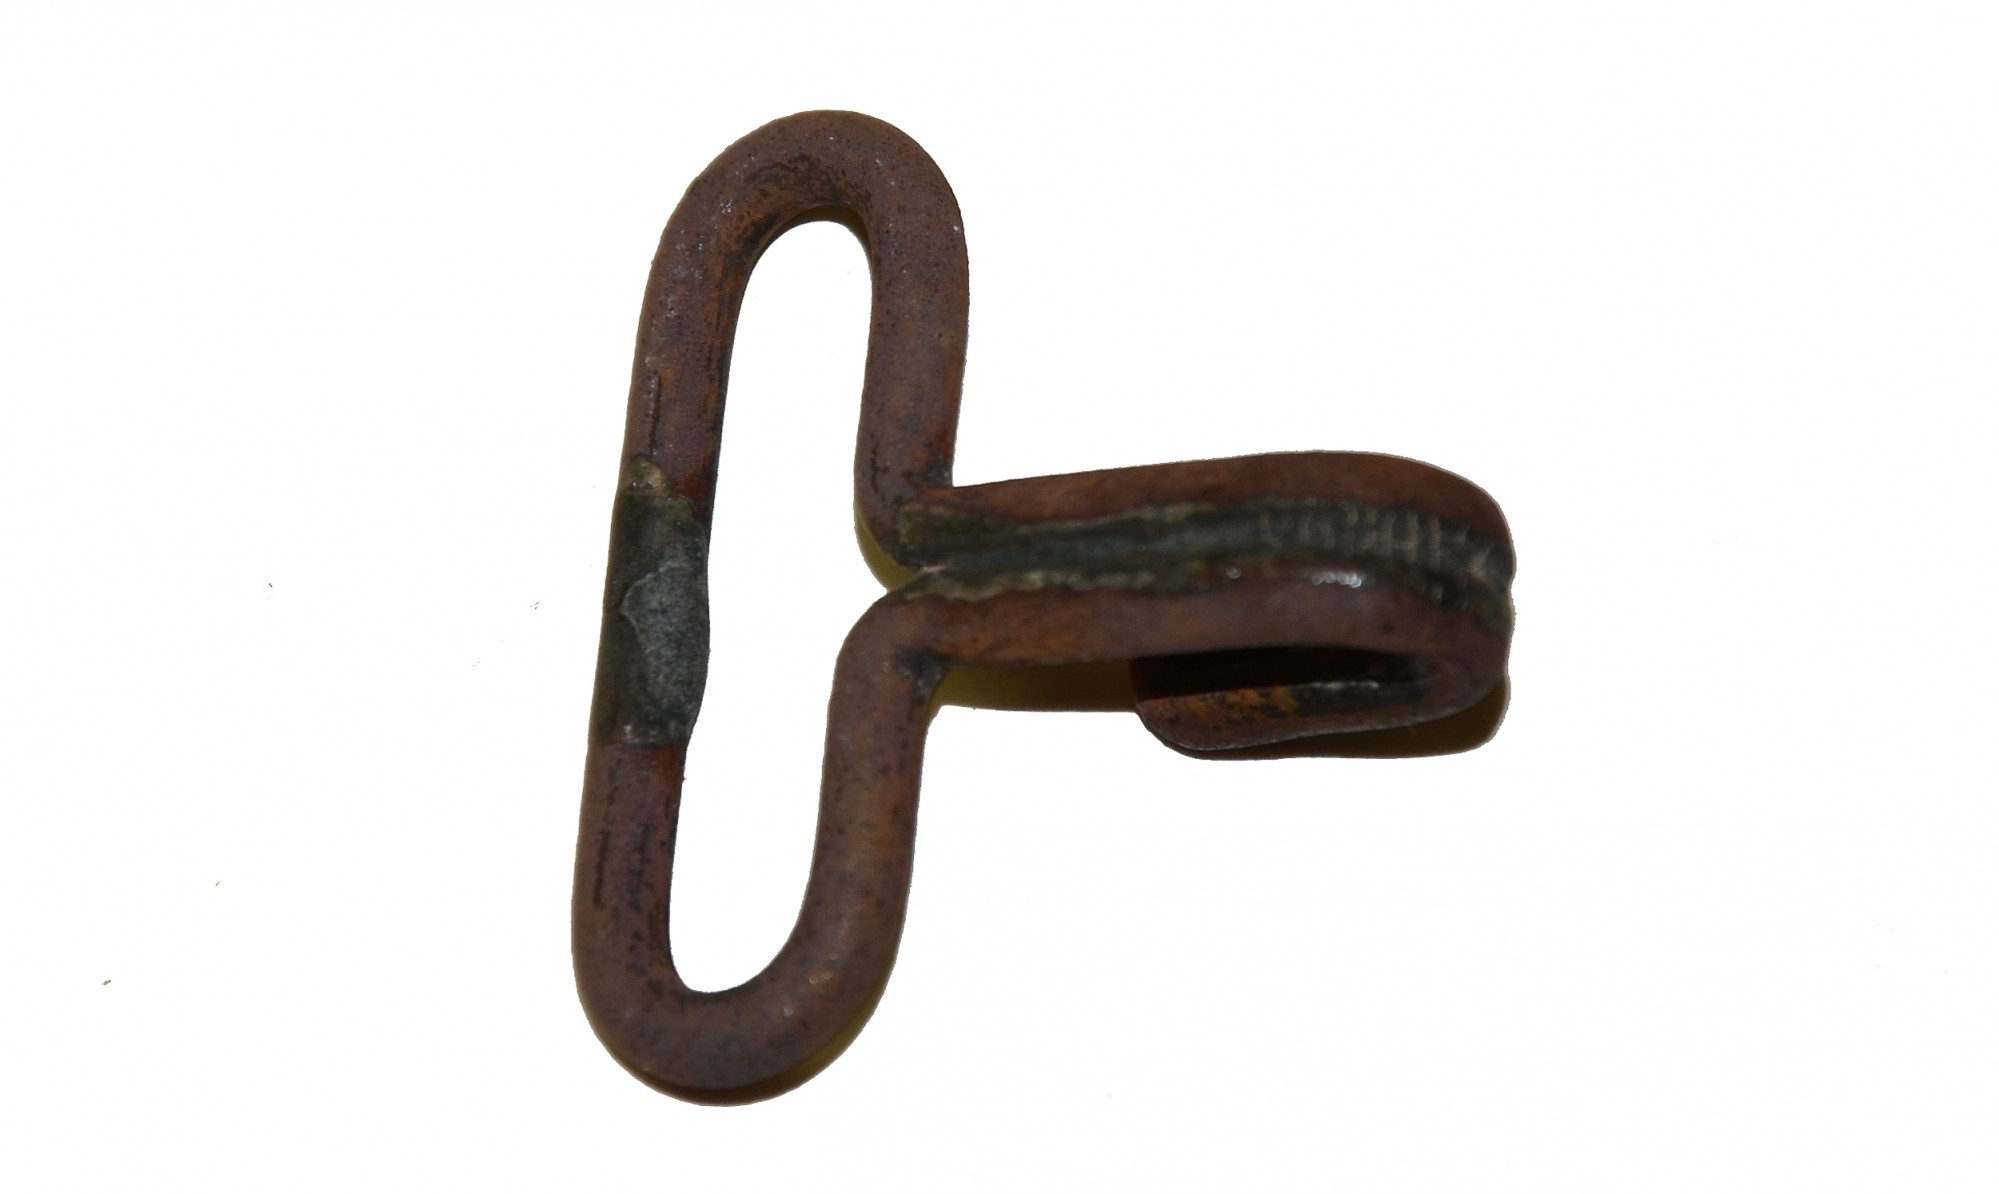 KNAPSACK CLAW HOOK RECOVERED NEAR WILLOUGHBY RUN – GETTYSBURG